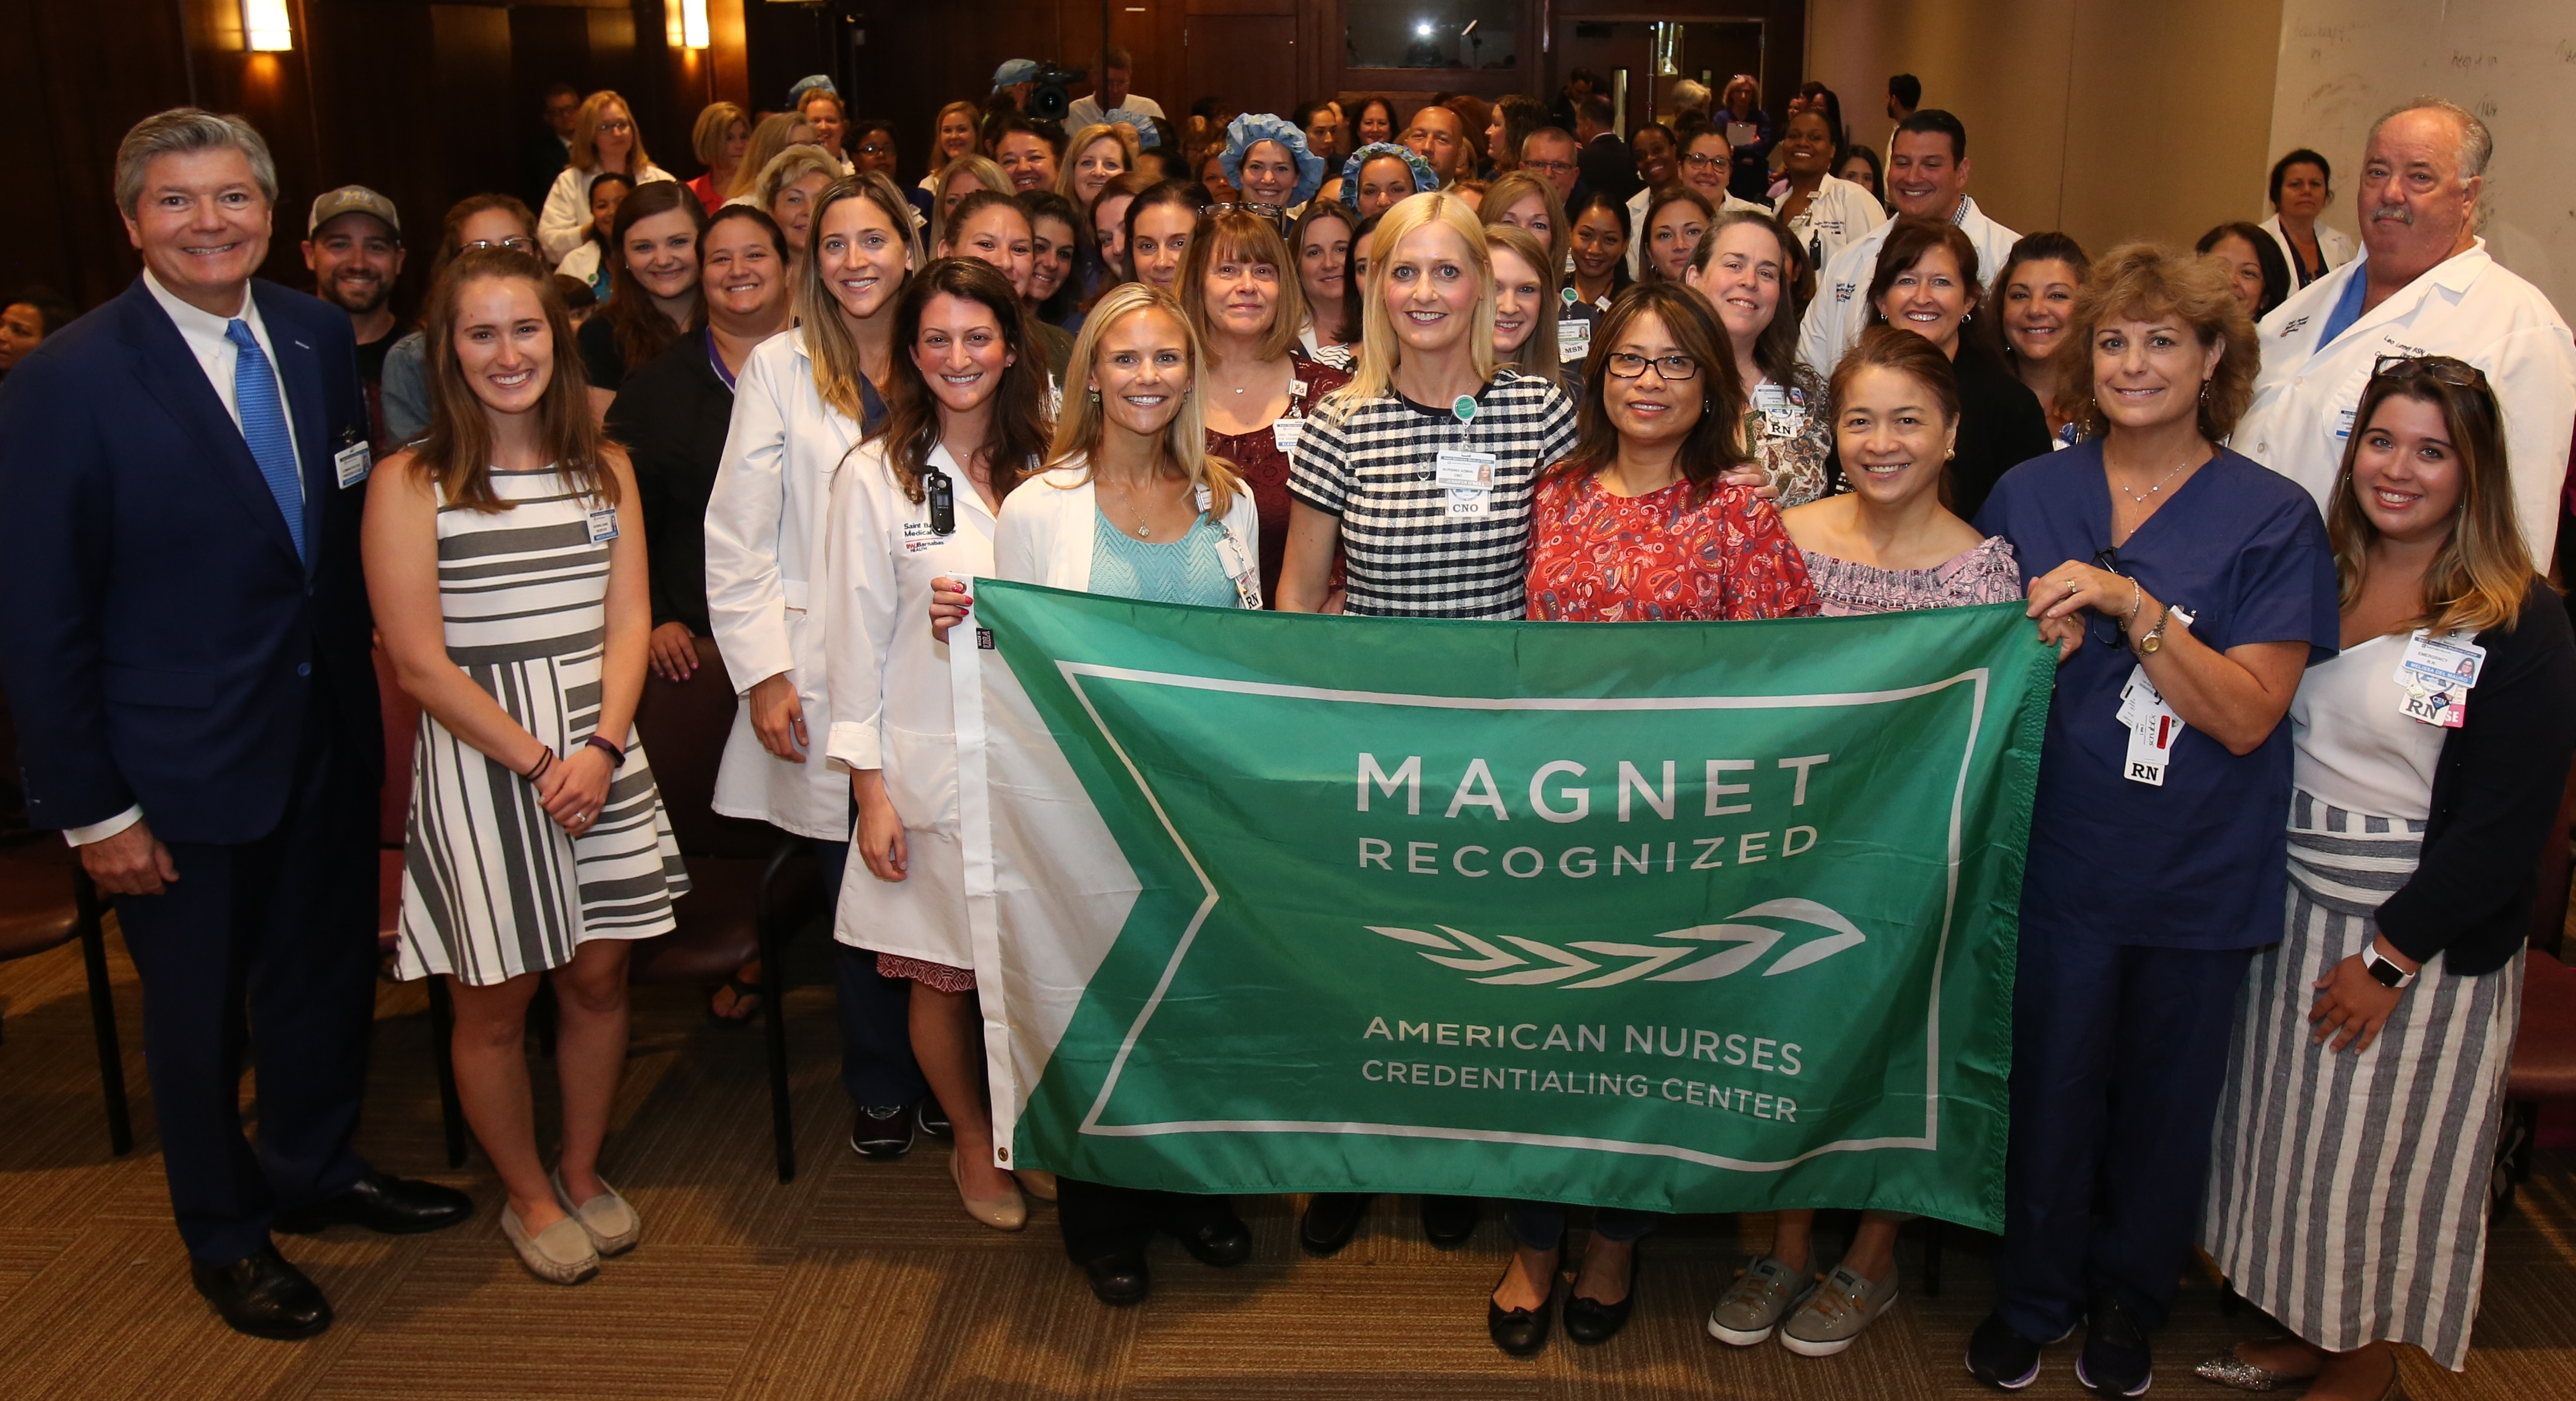 Saint Barnabas Medical Center Achieves Magnet Designation